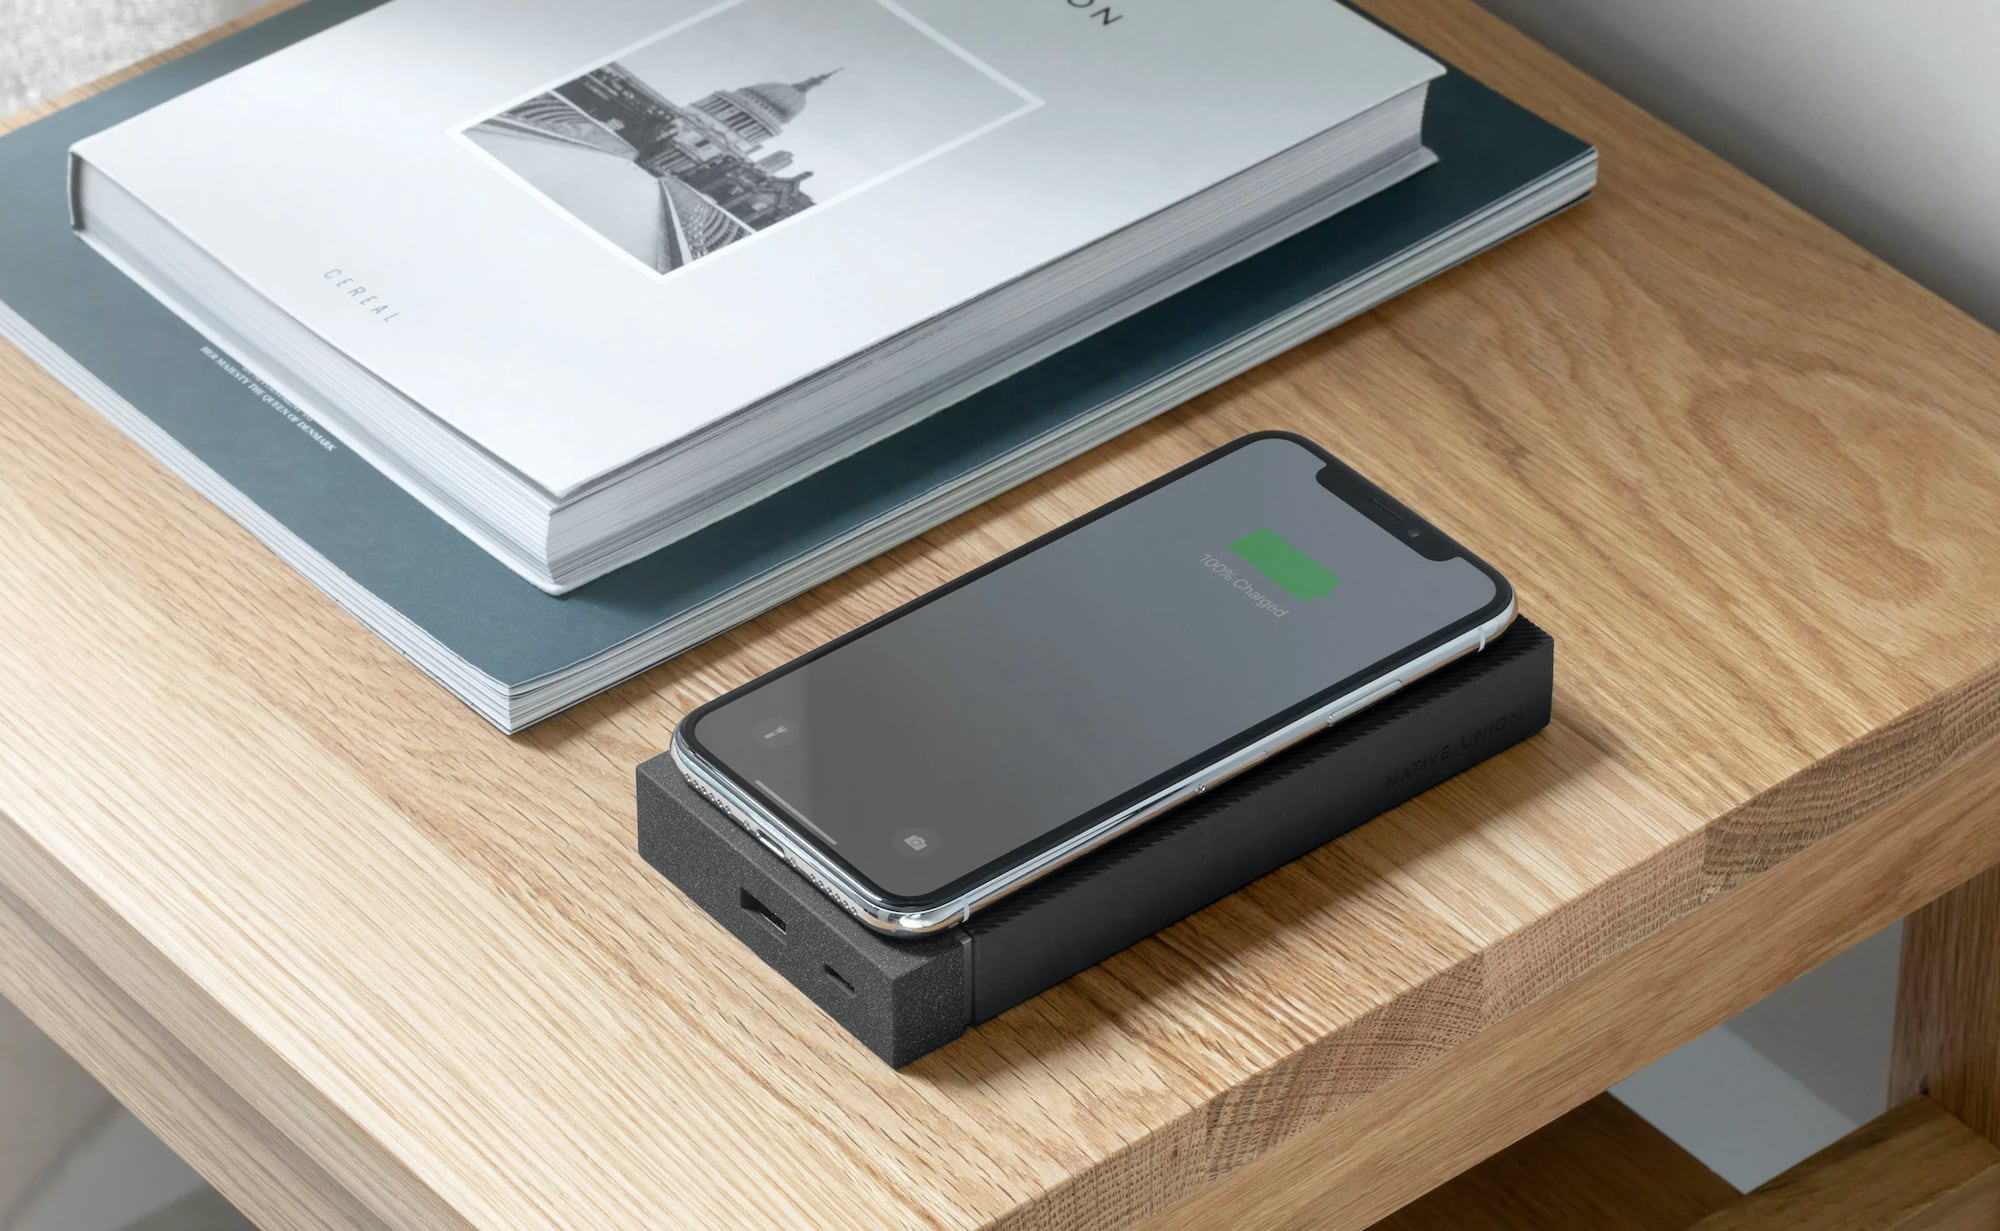 Native Union Jump+ Wireless Powerbank offers up to 12,000 mAh of battery capacity